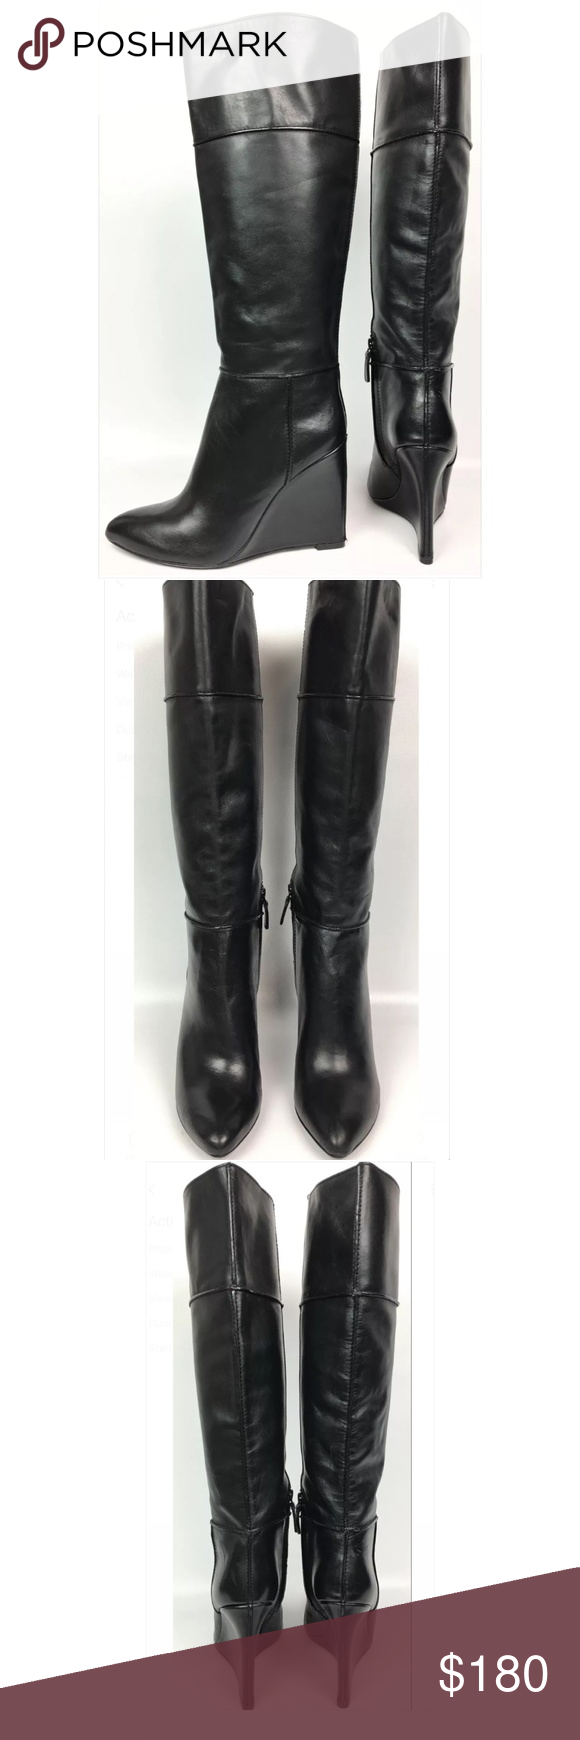 4812b497d67 Tory Burch Linnett Wedge Knee High Boots Great condition. Boots have  scuffs